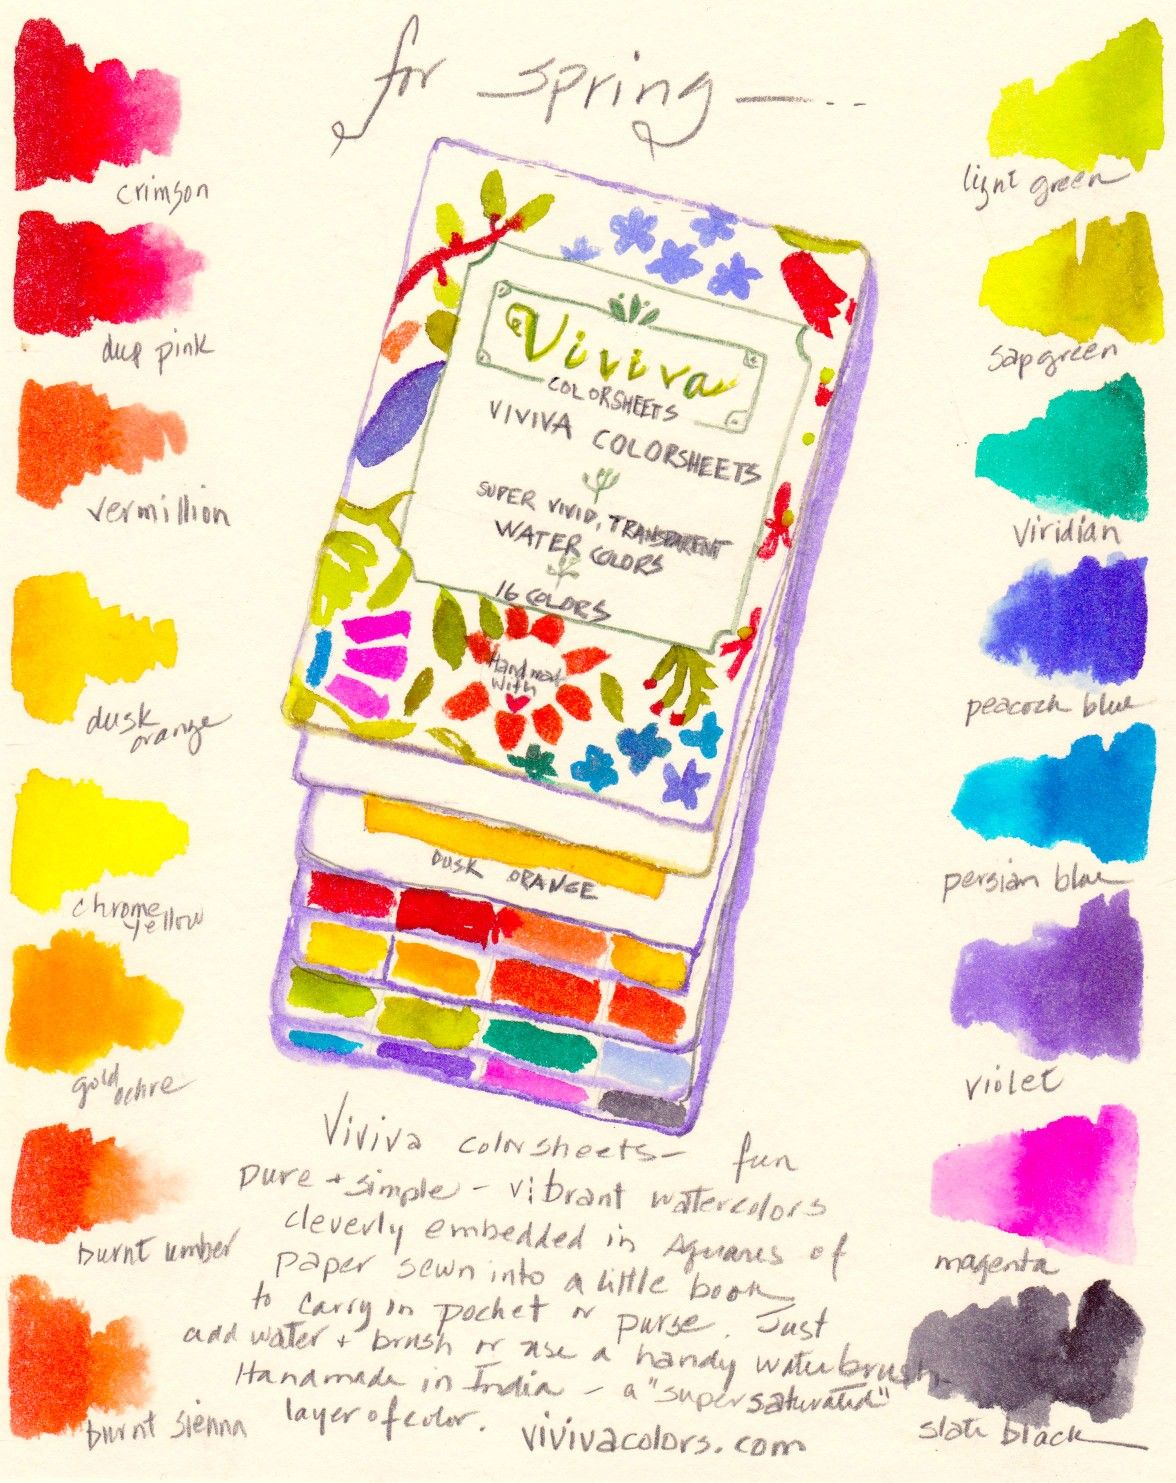 Viviva Colorsheets Is A New And Unique Way For You To Easily Paint